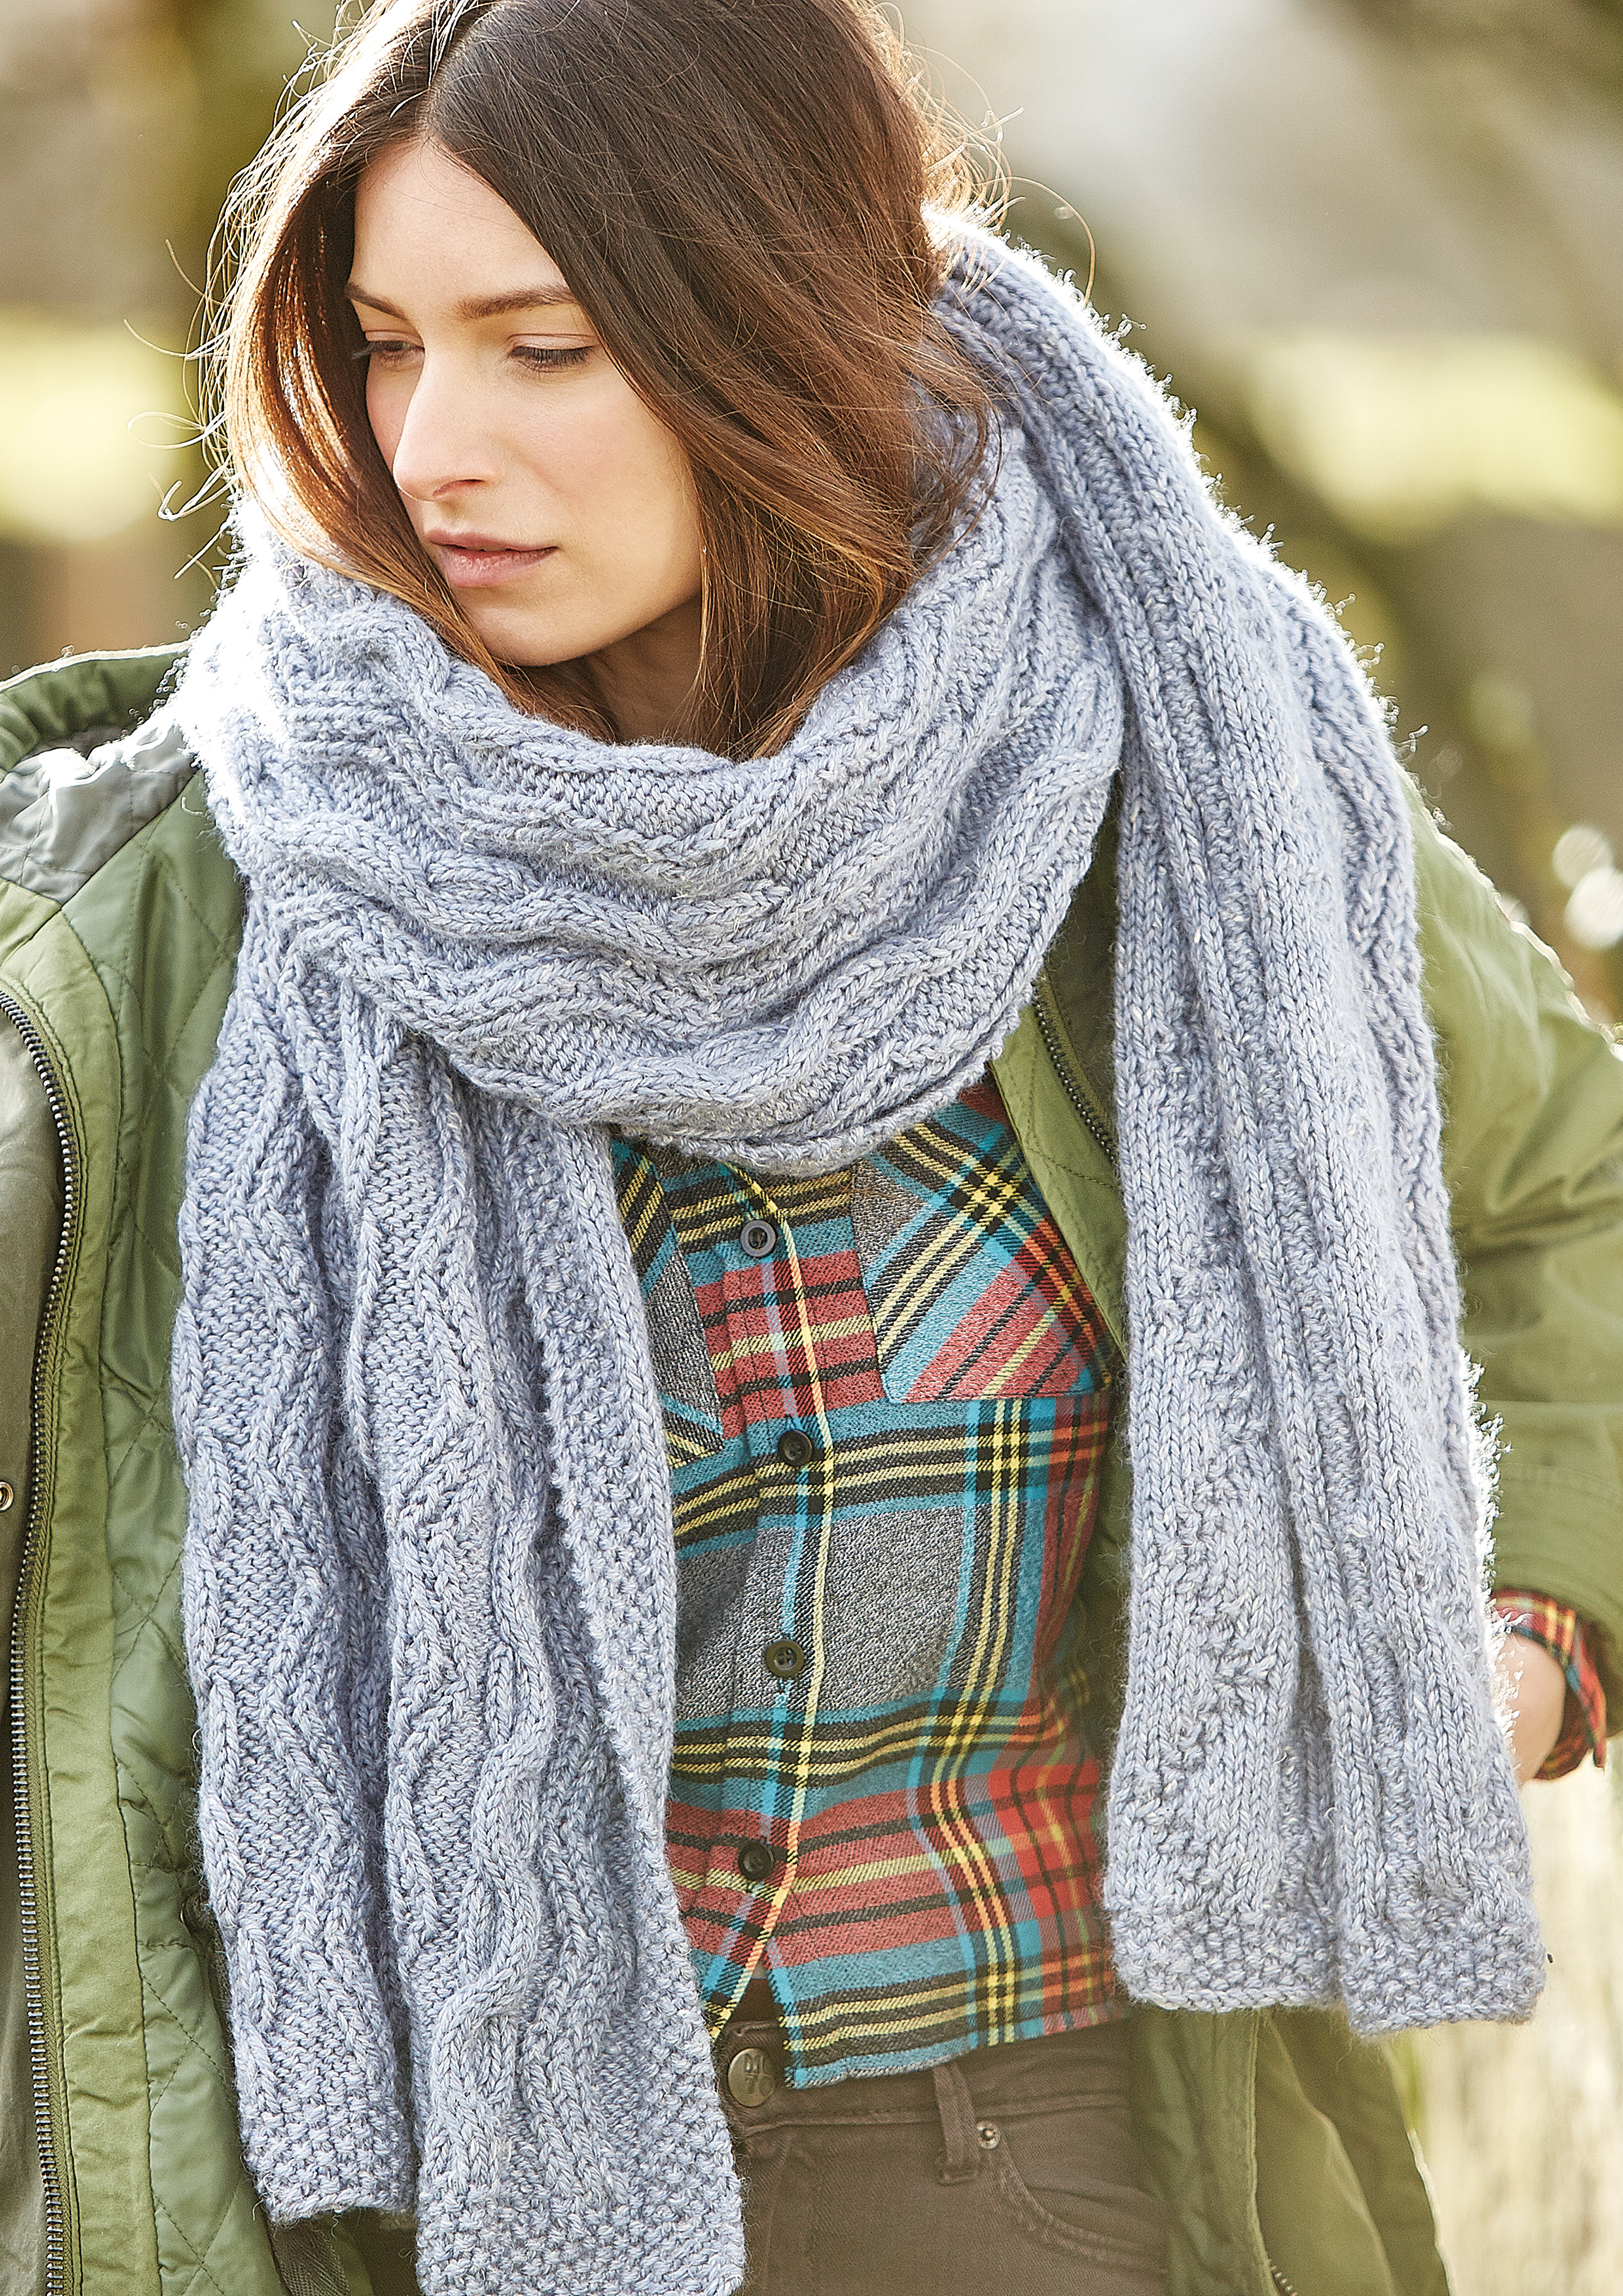 Free Knitting Pattern for a Texture and Cable Scarf ⋆ Knitting Bee